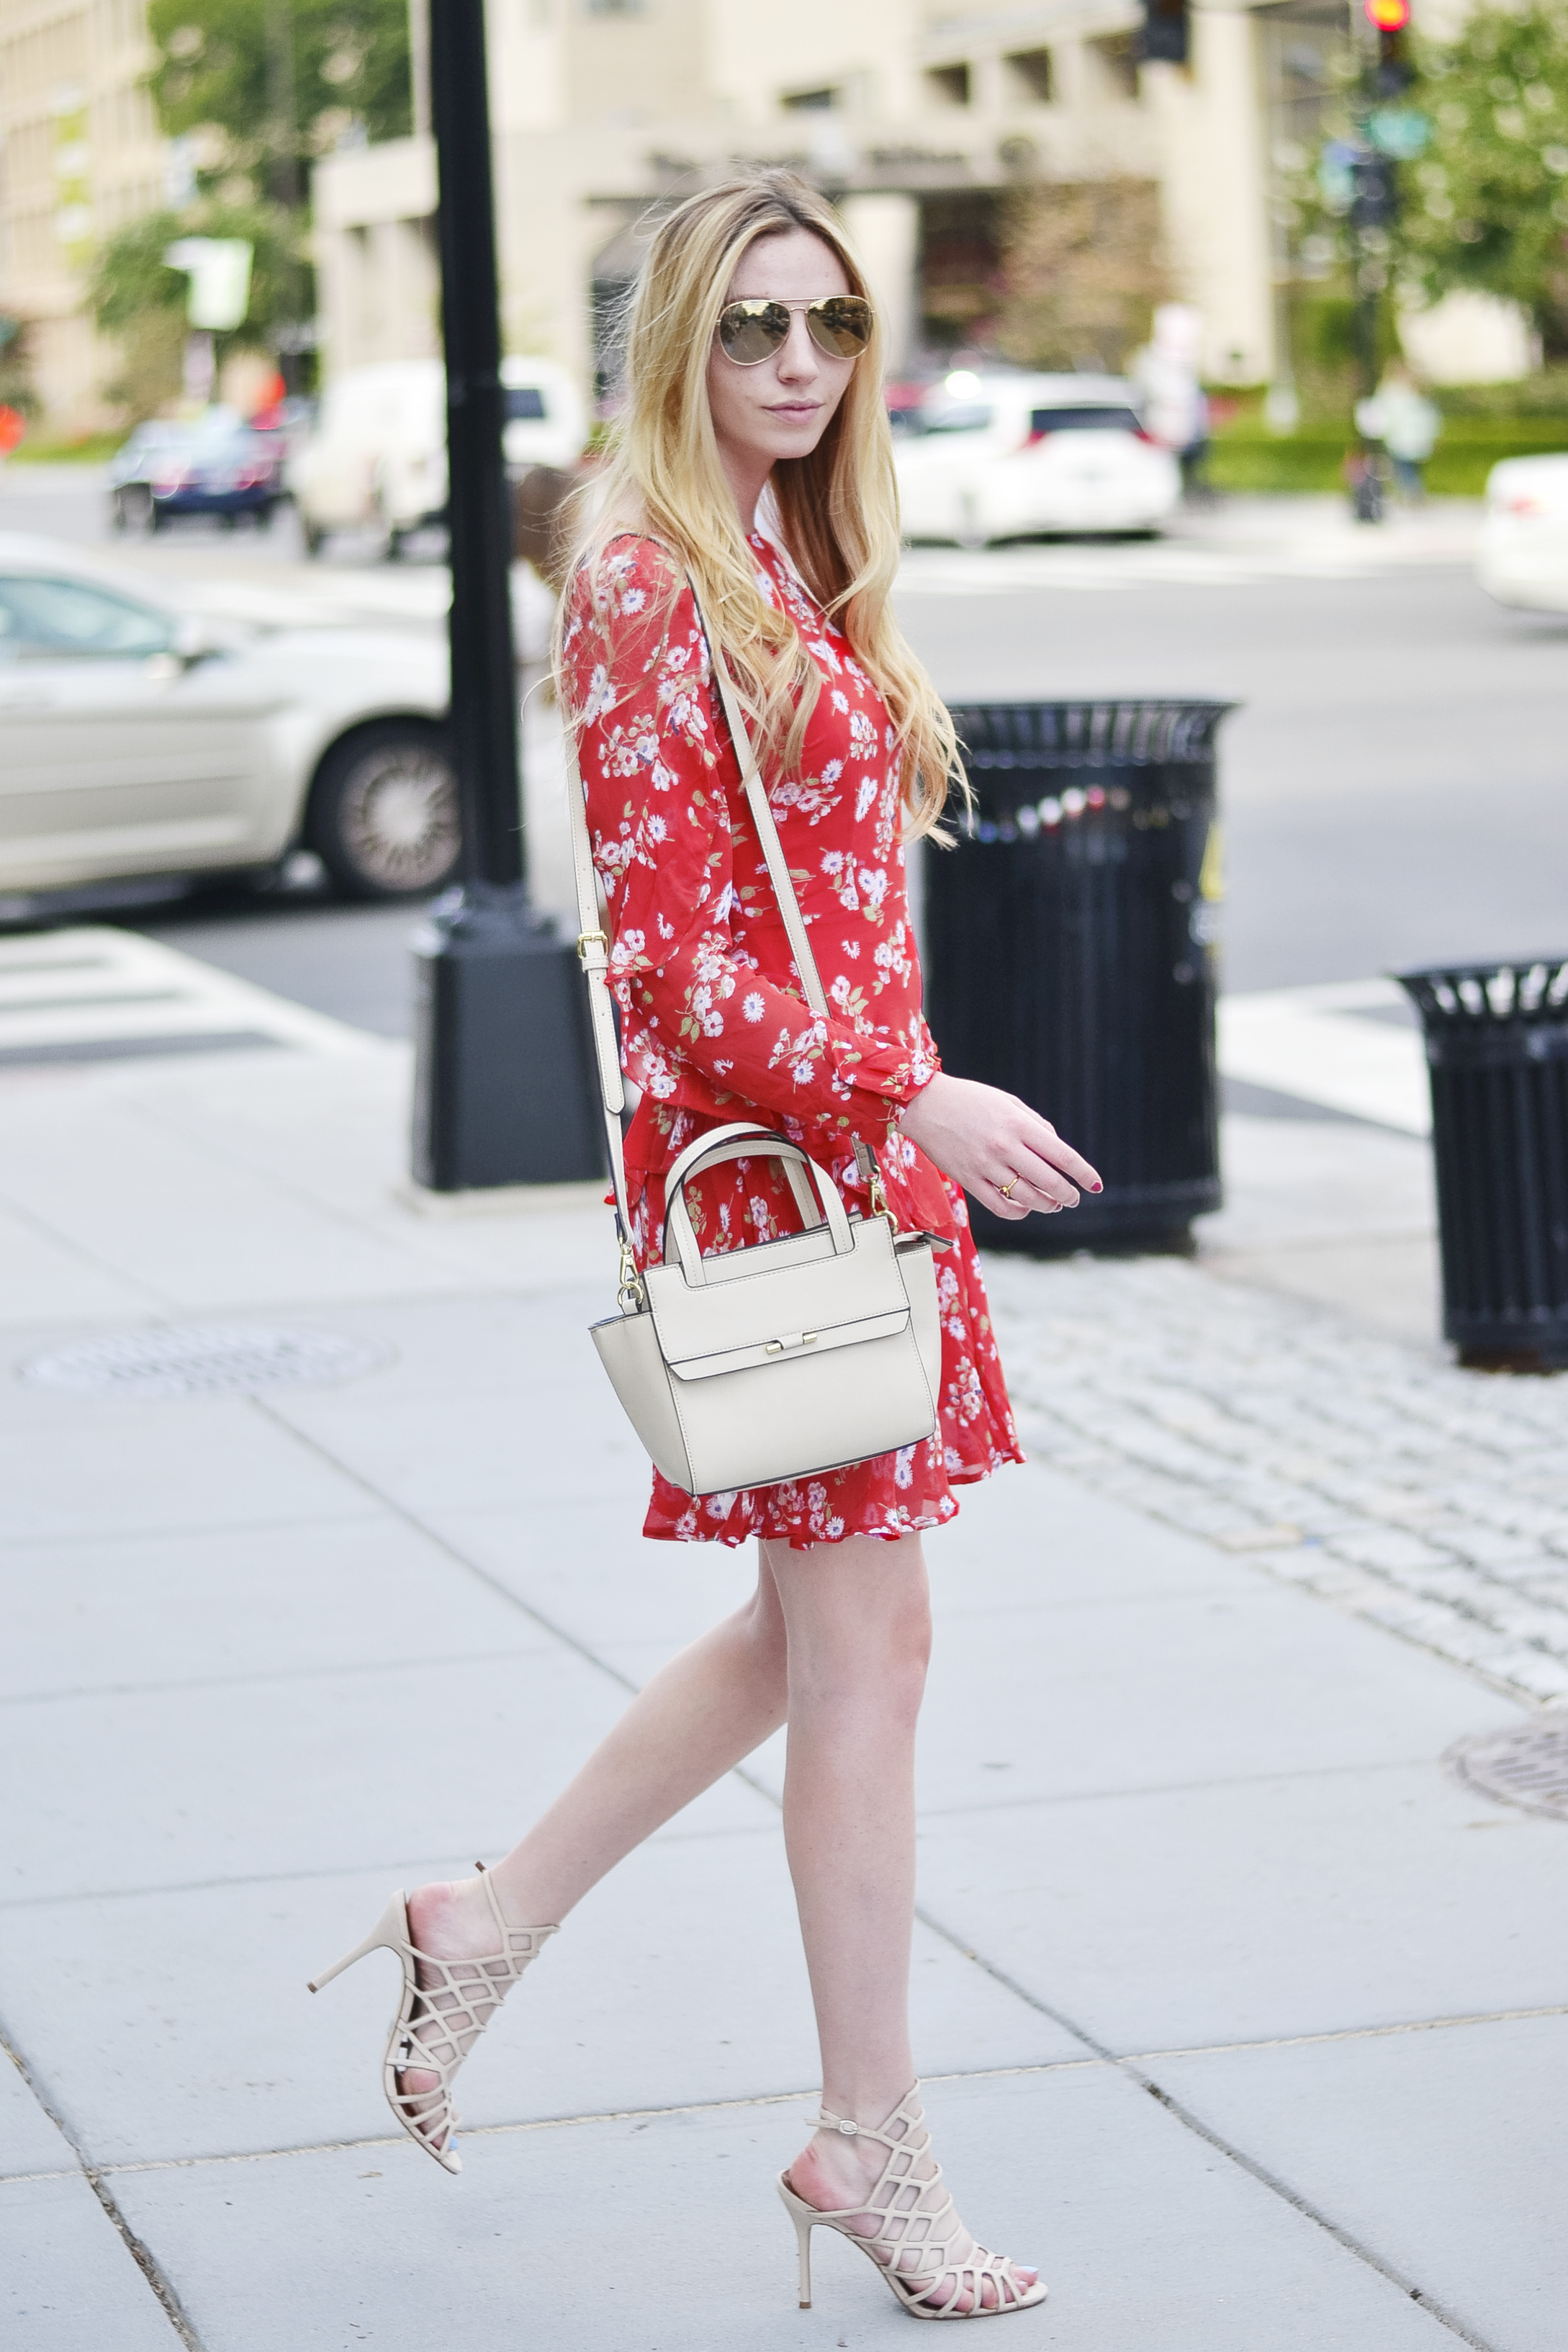 Blogger Red Dress (via Chic Now)